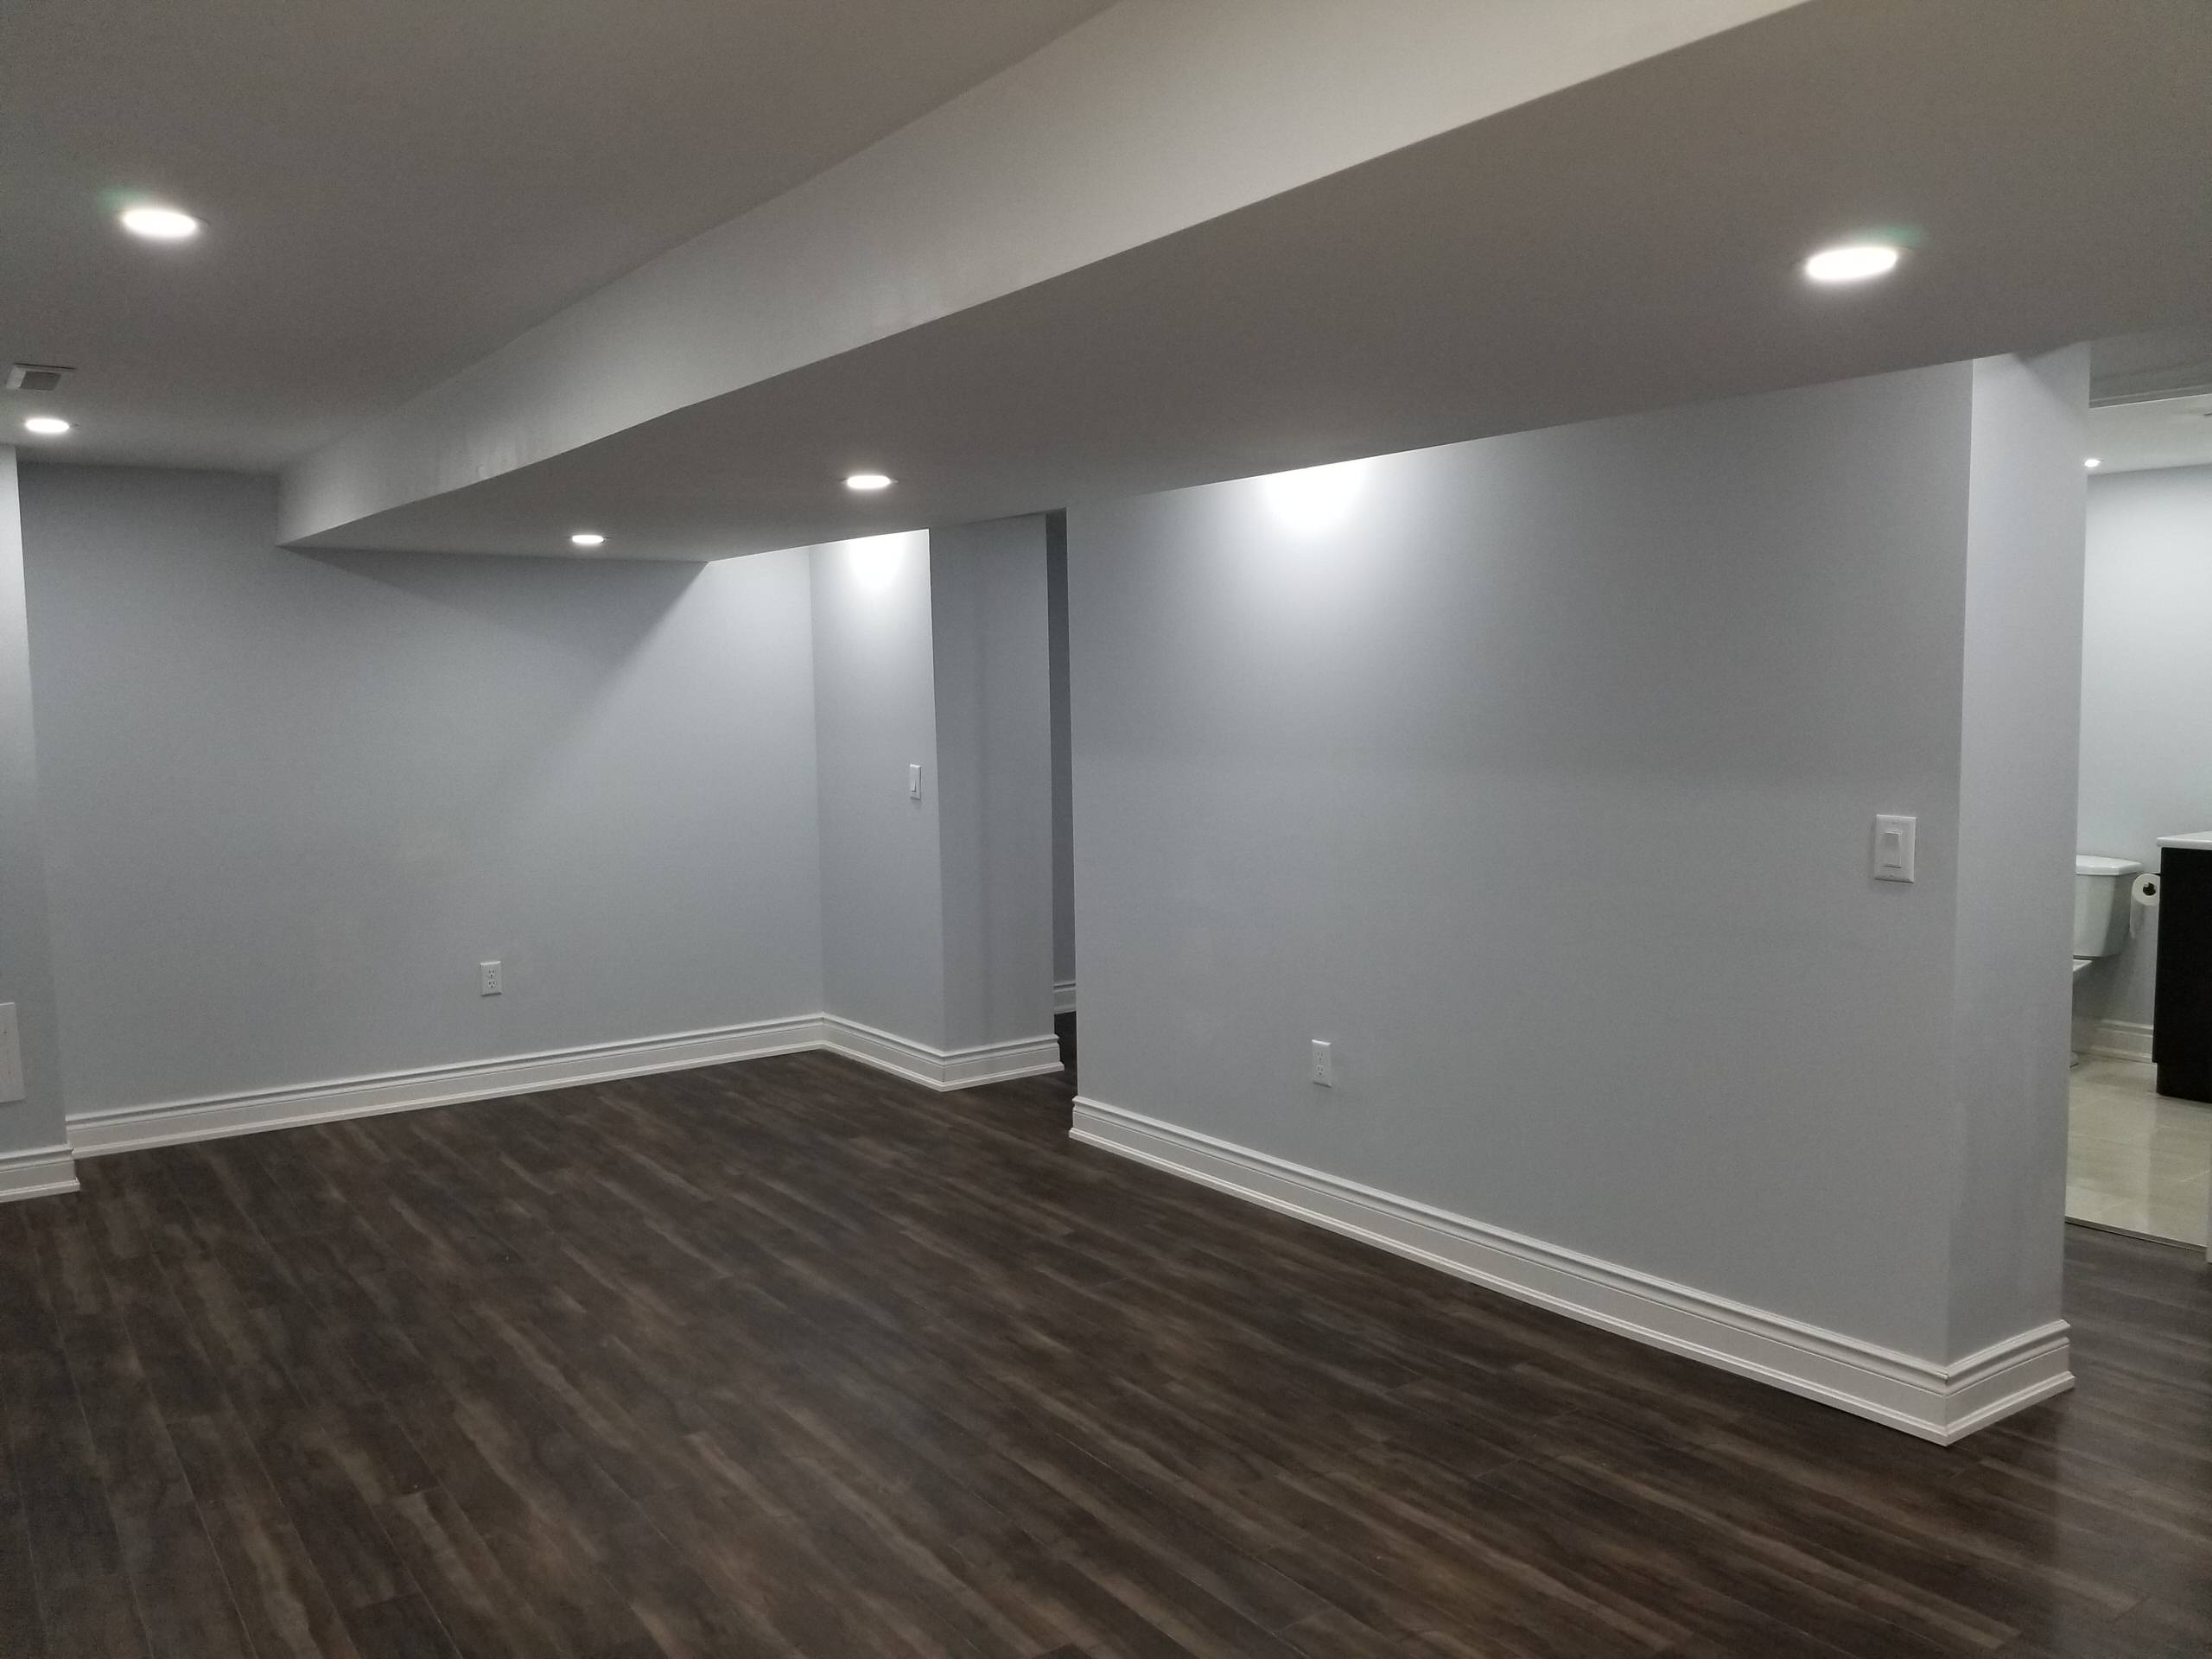 Basement Re-Modeling